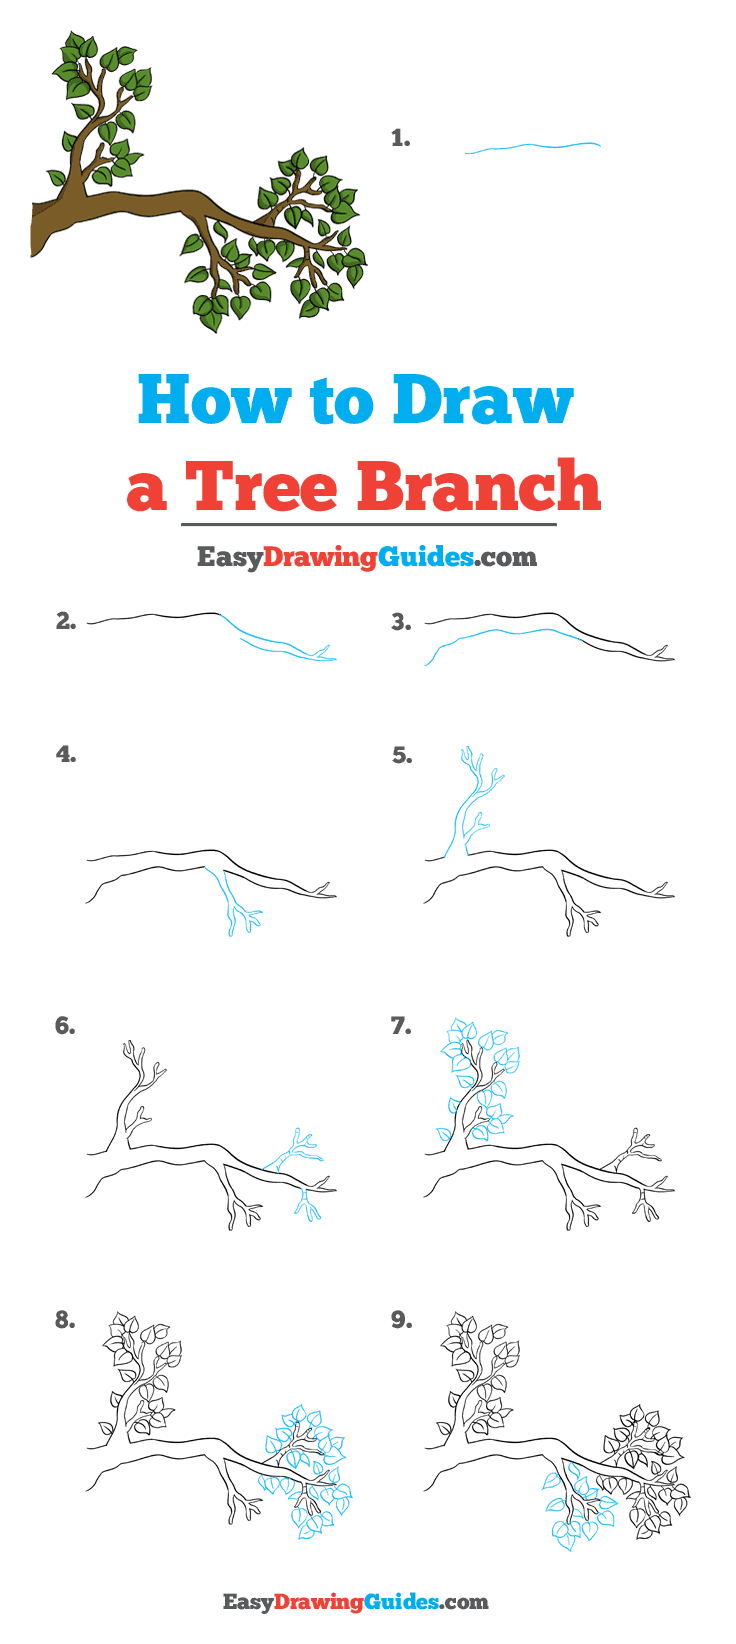 How to Draw Tree Branch